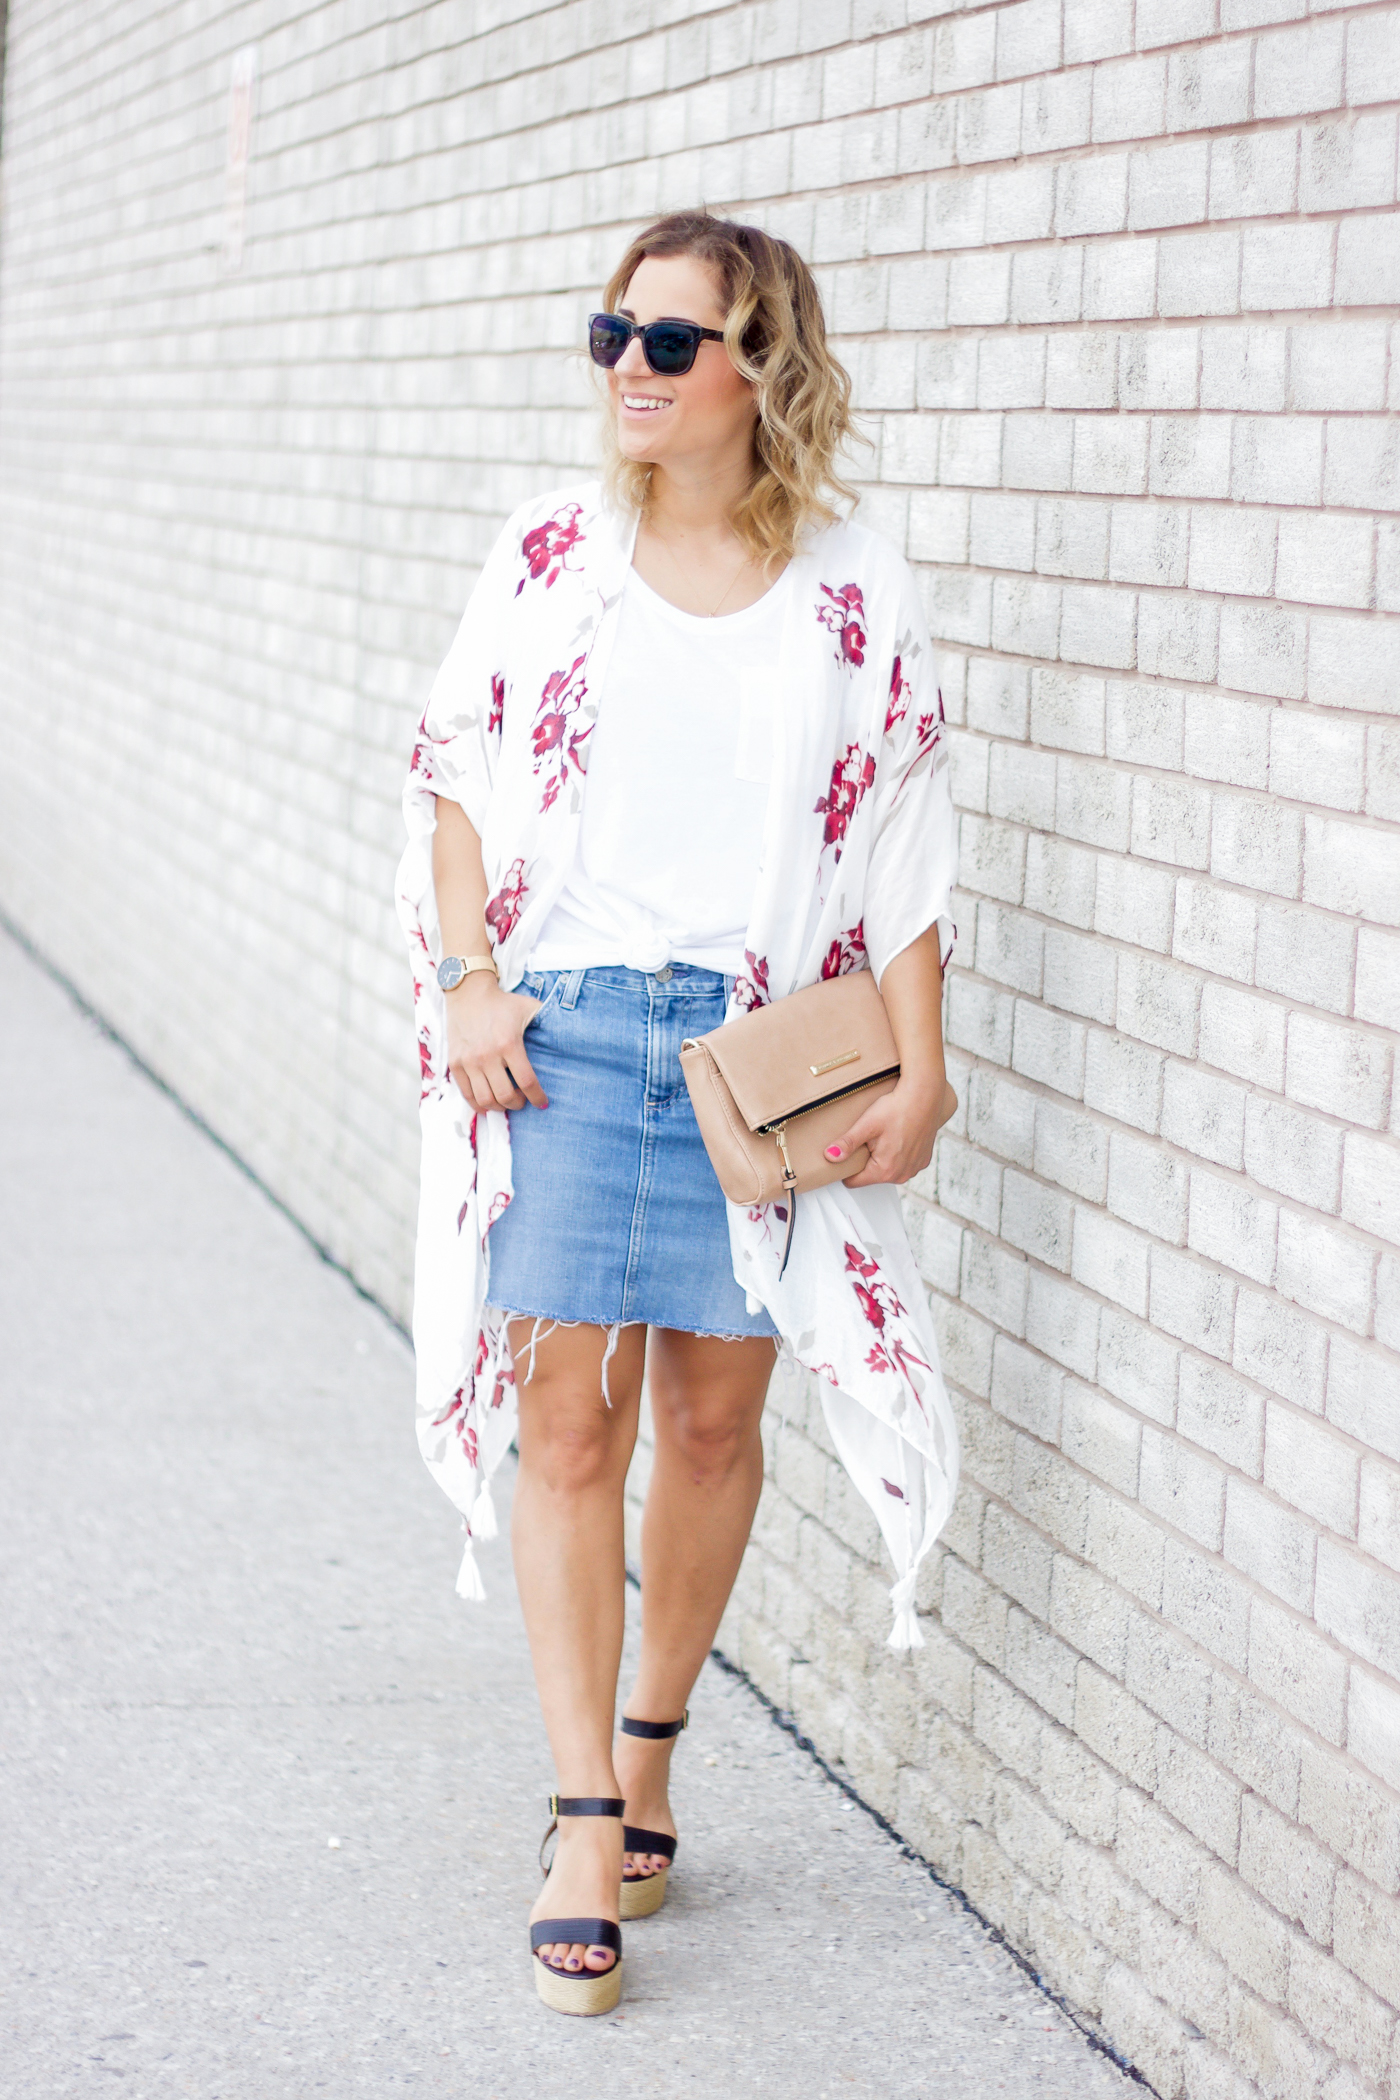 Summer outfit idea with a denim skirt and white t-shirt